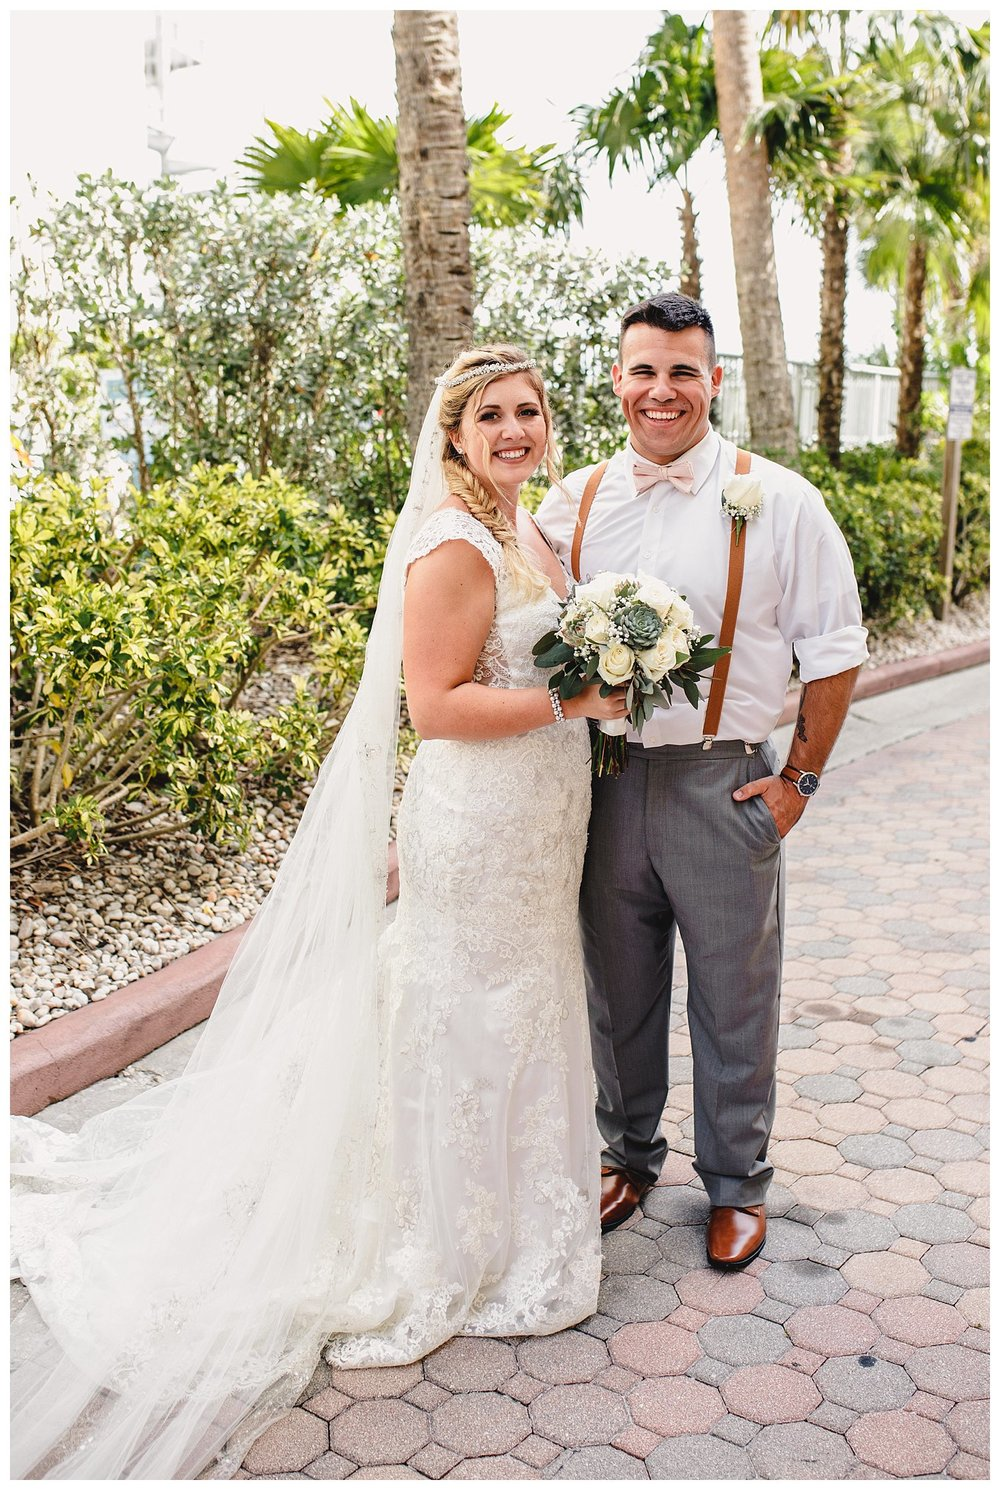 Kelsey_Diane_Photography_Destination_Wedding_Sarasota_Florida_Beach_Wedding_Alex_Austin_0636.jpg